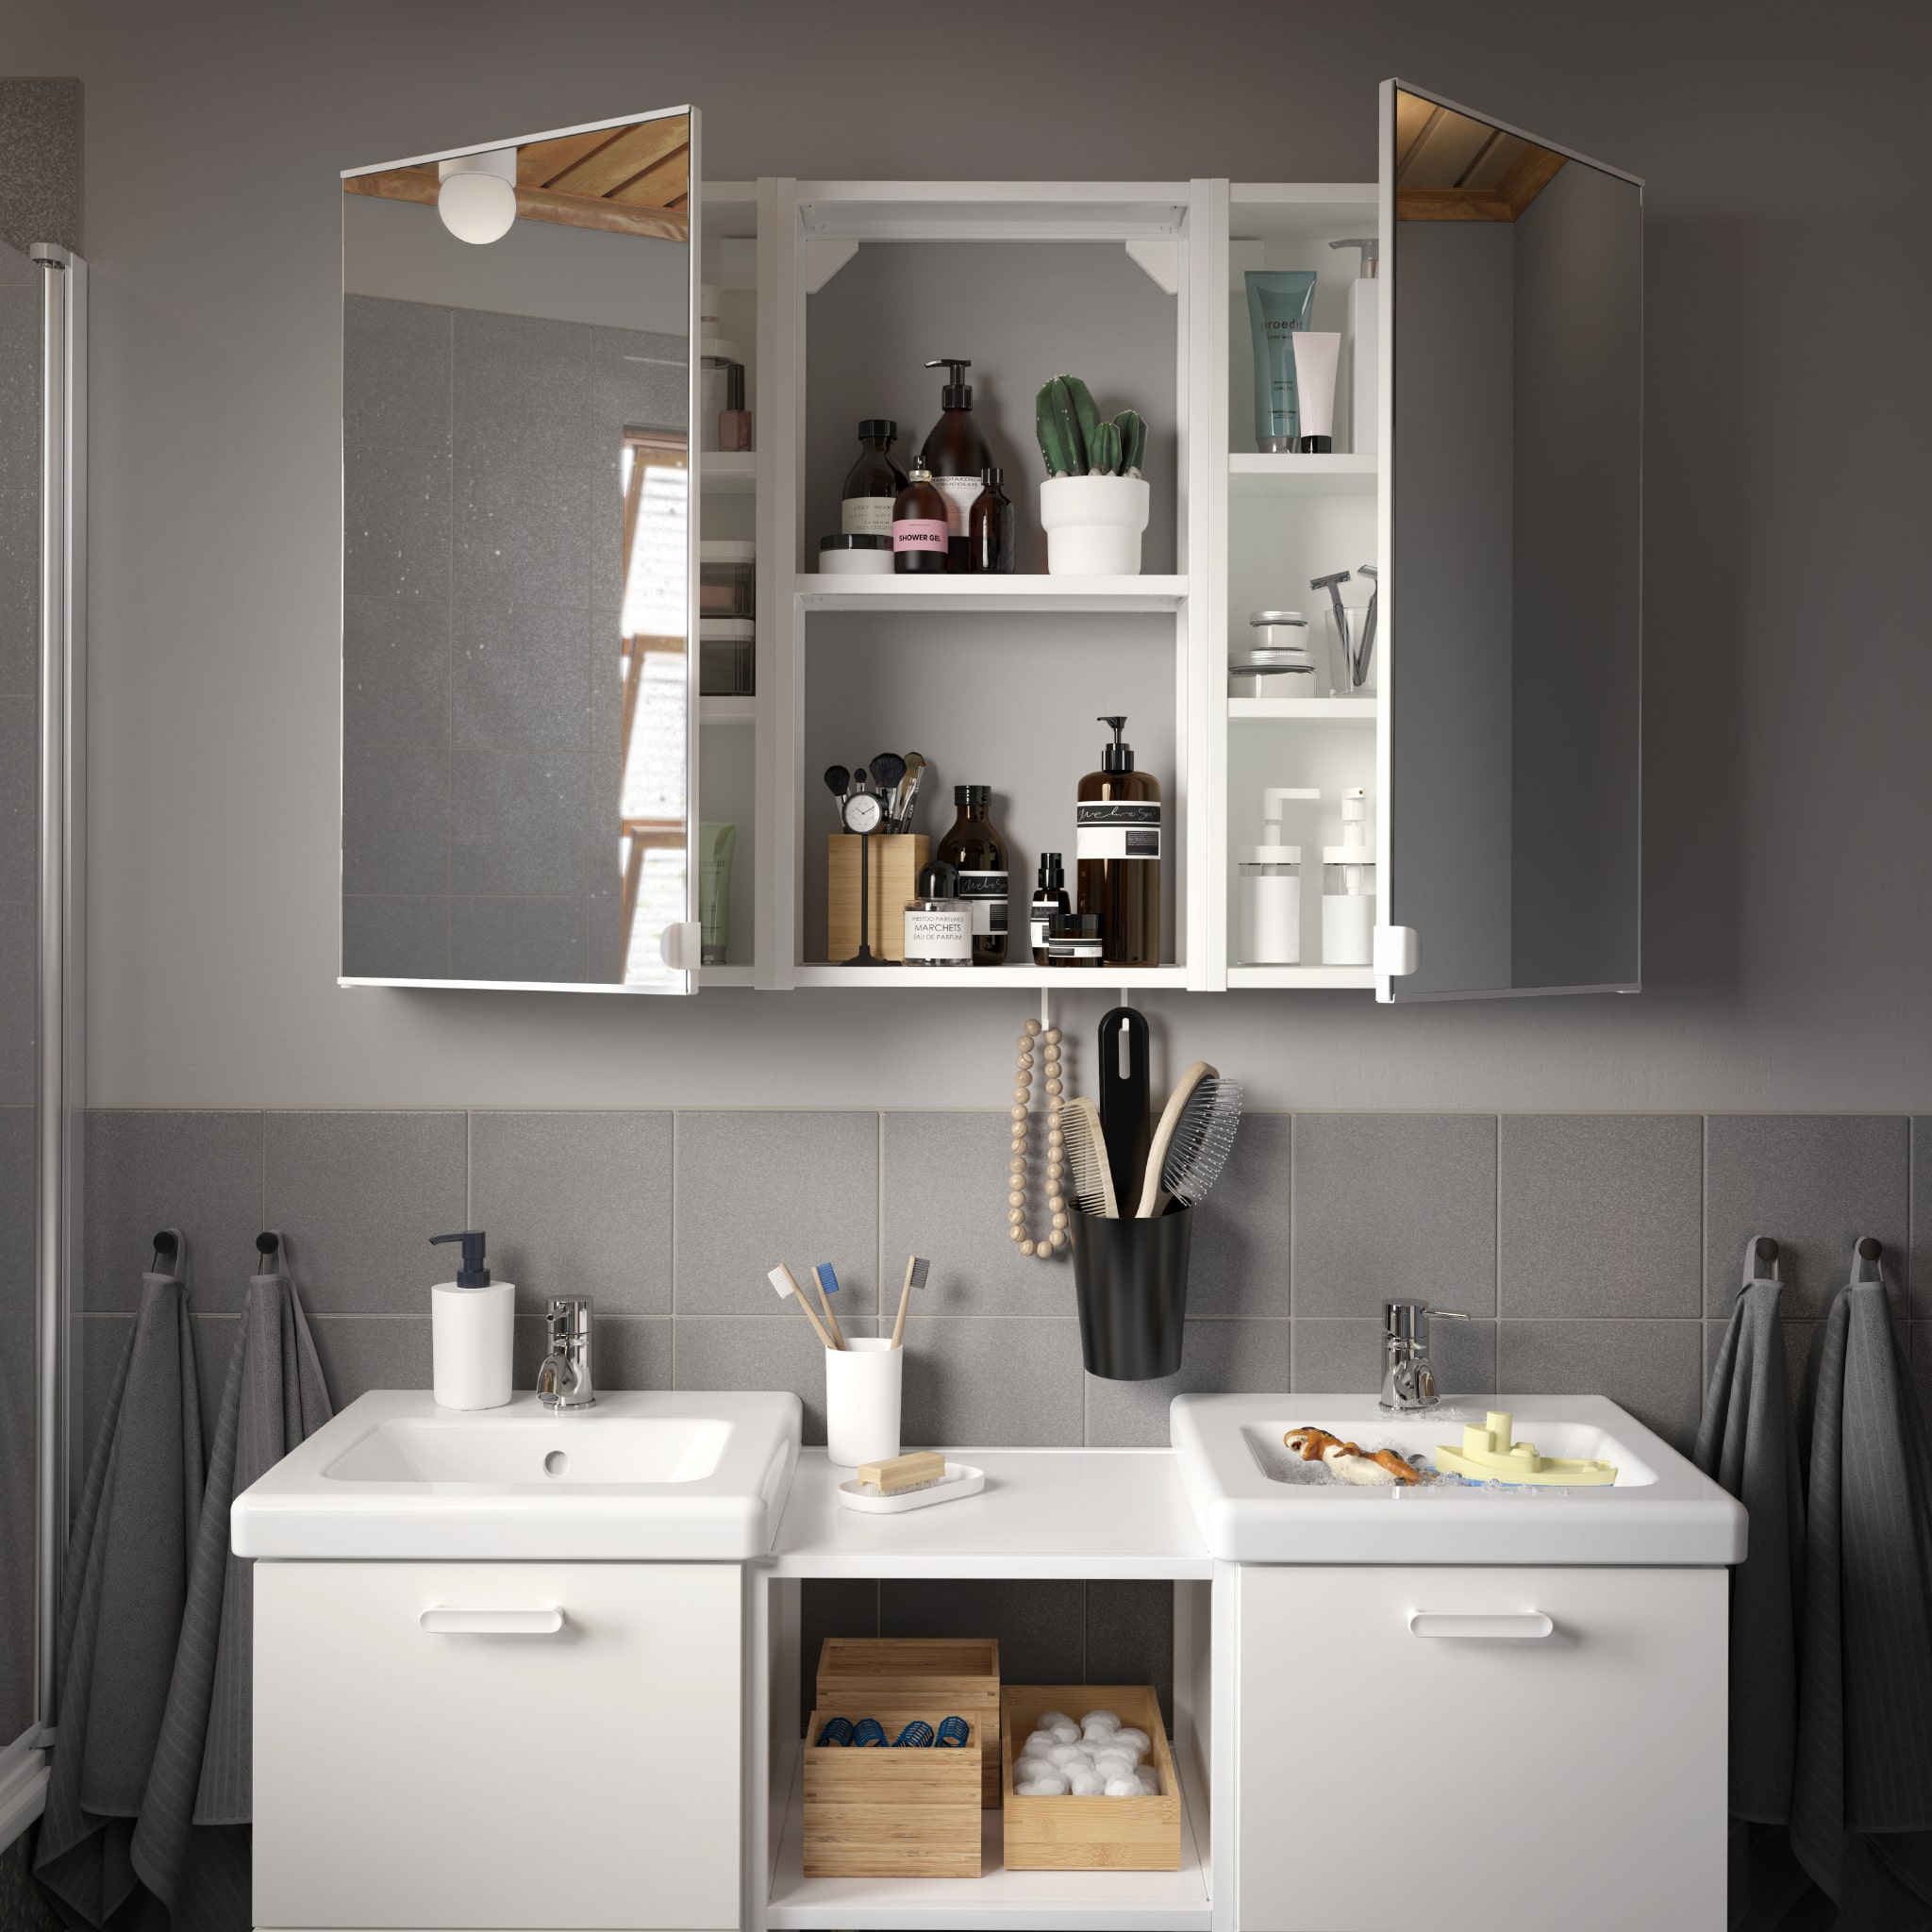 A grey/grey-tiled bathroom with a wash-stand/wash-basin in white, a wall cabinet with two mirror doors and four grey towels.